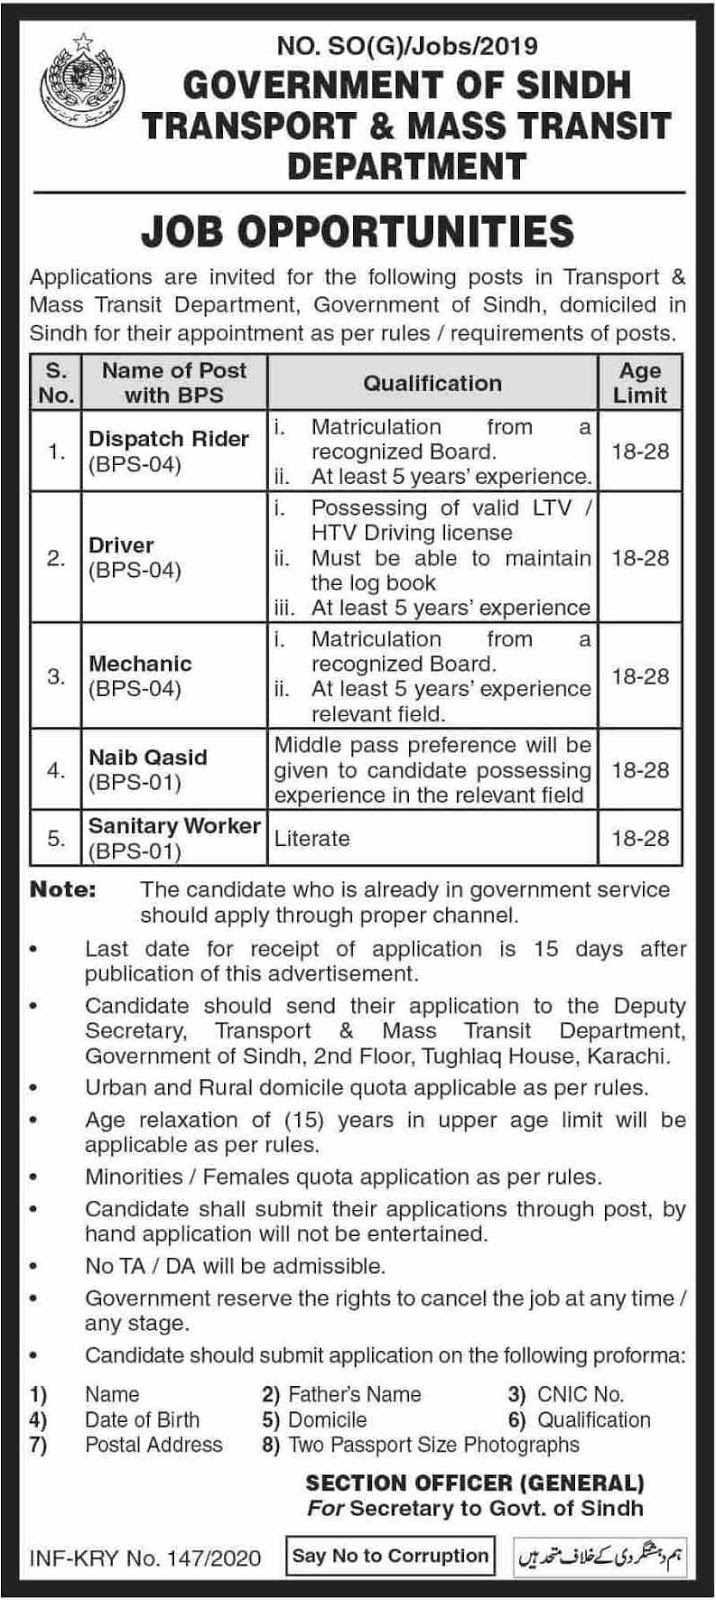 Transport & Mass Transit Department Government of Sindh Jobs